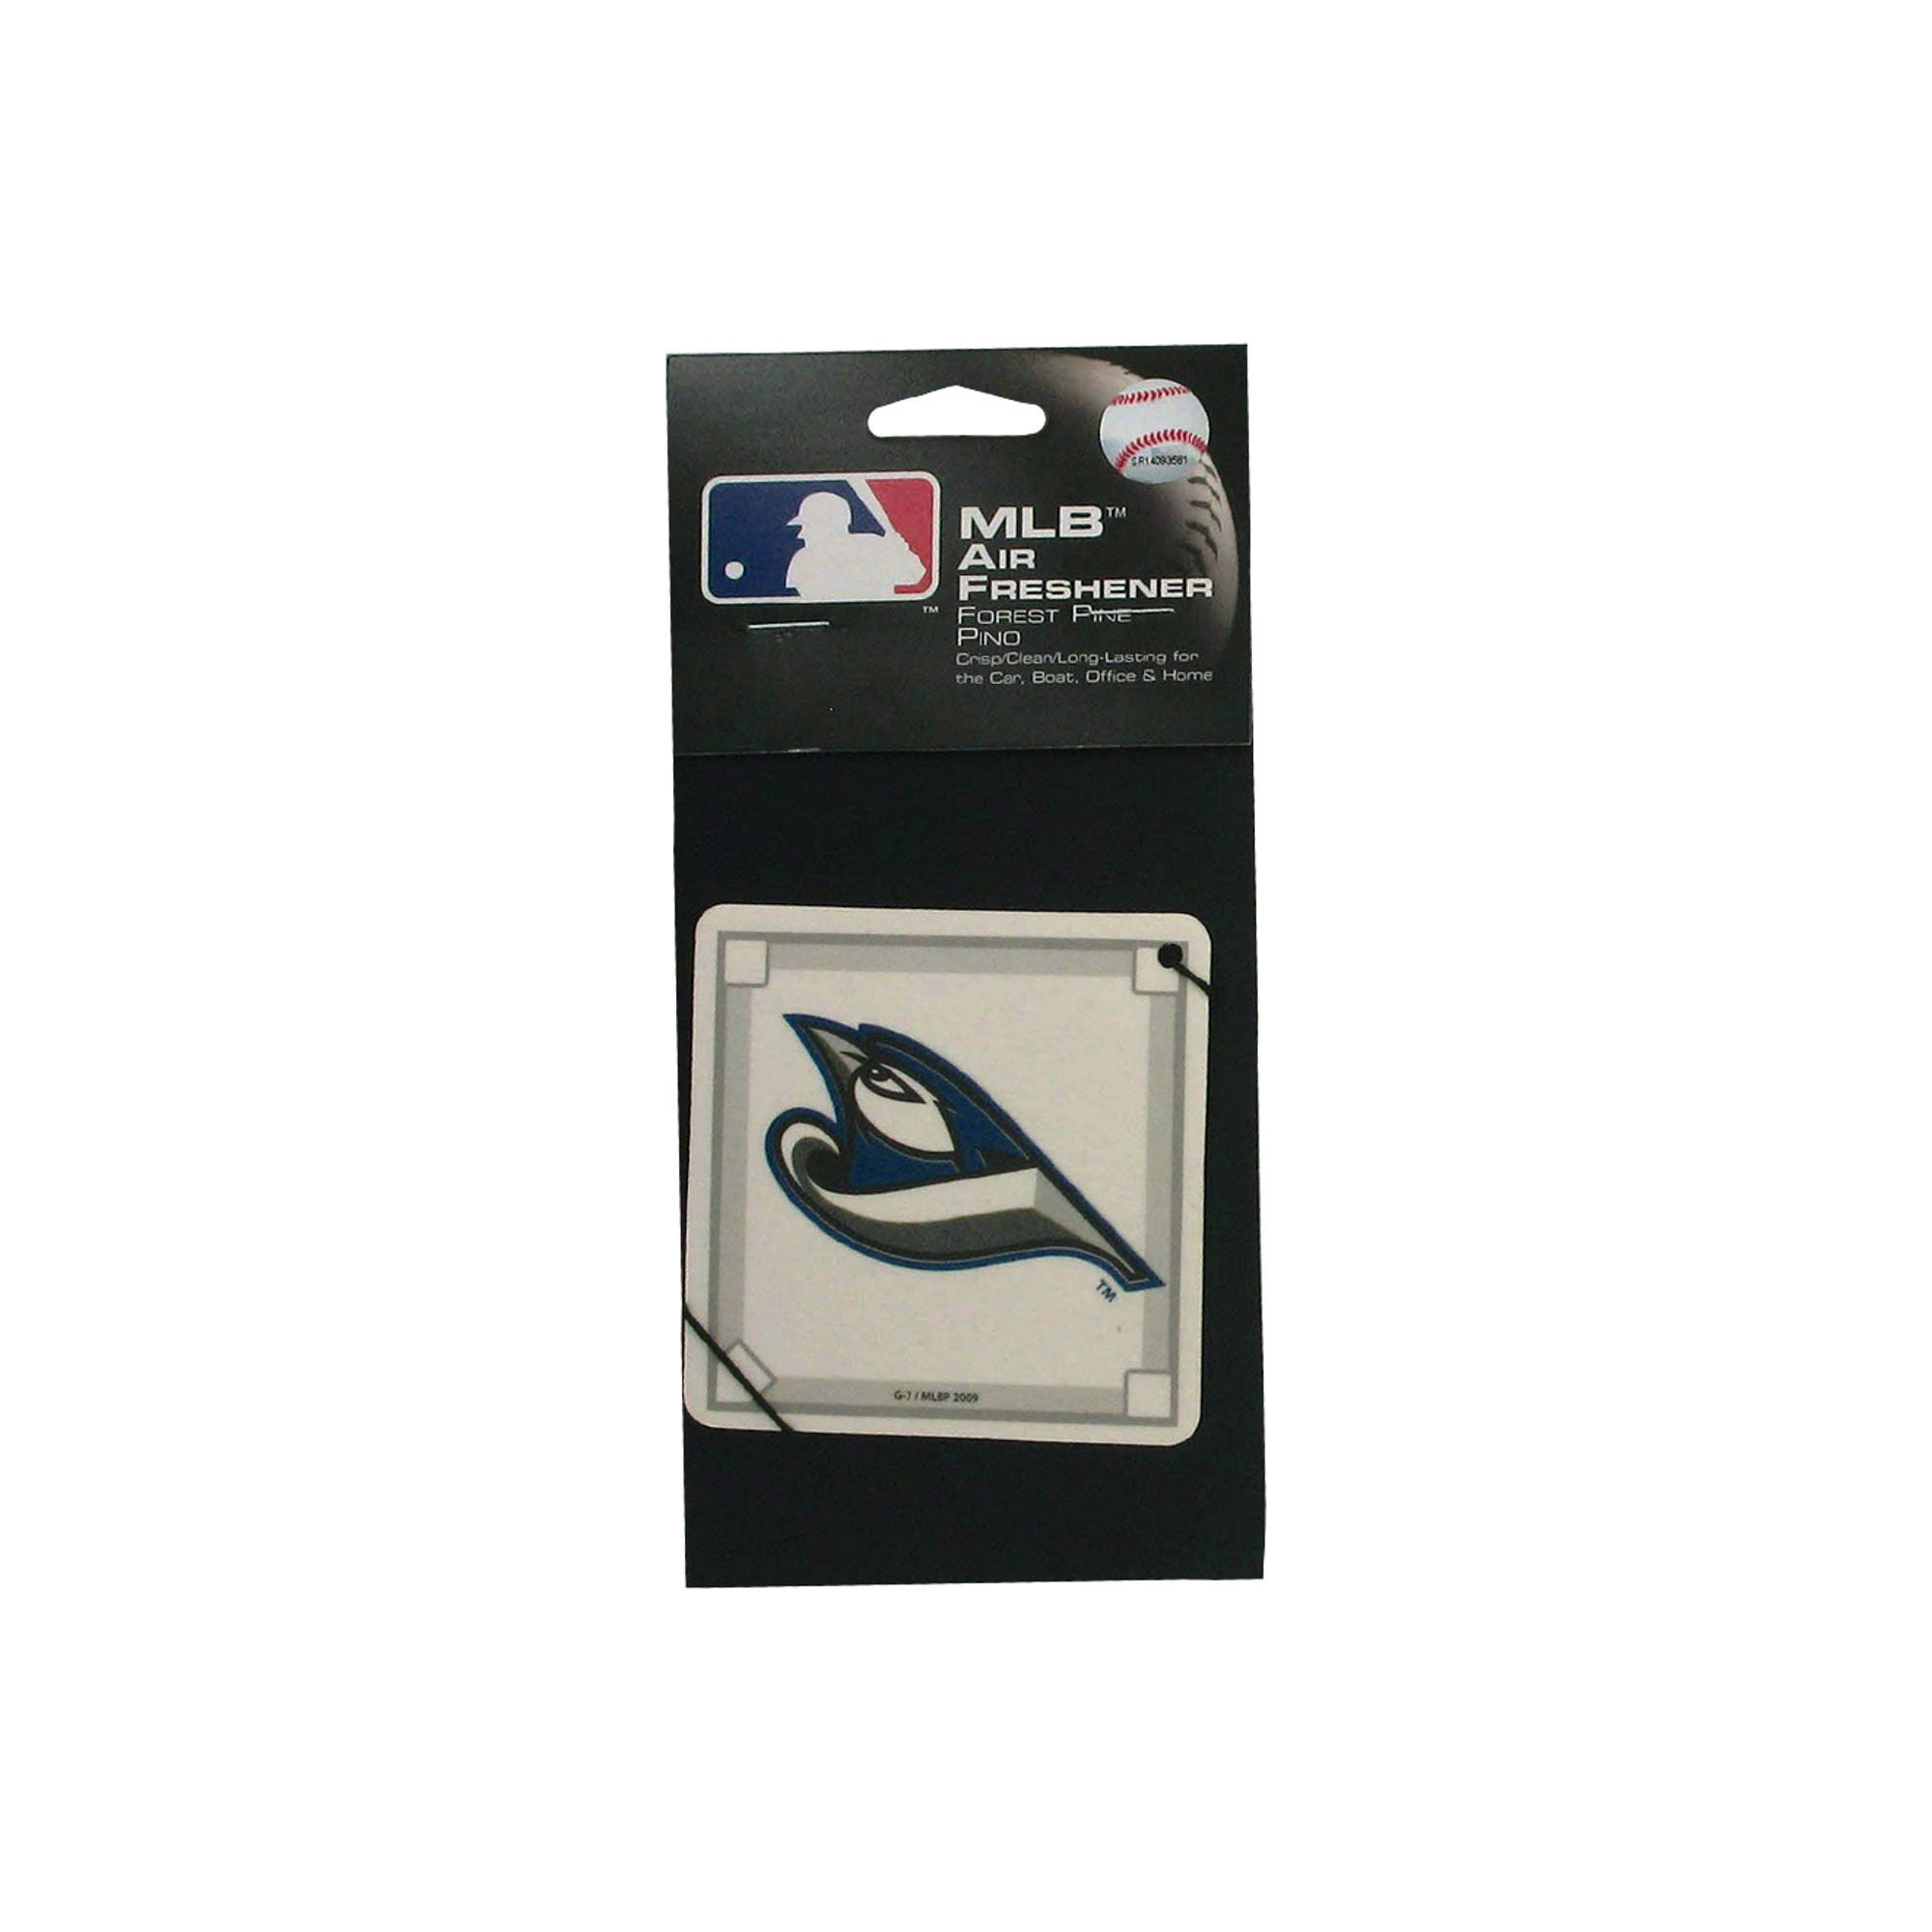 Blue Jays BASEBALL Pine Air Freshener- Qty 24